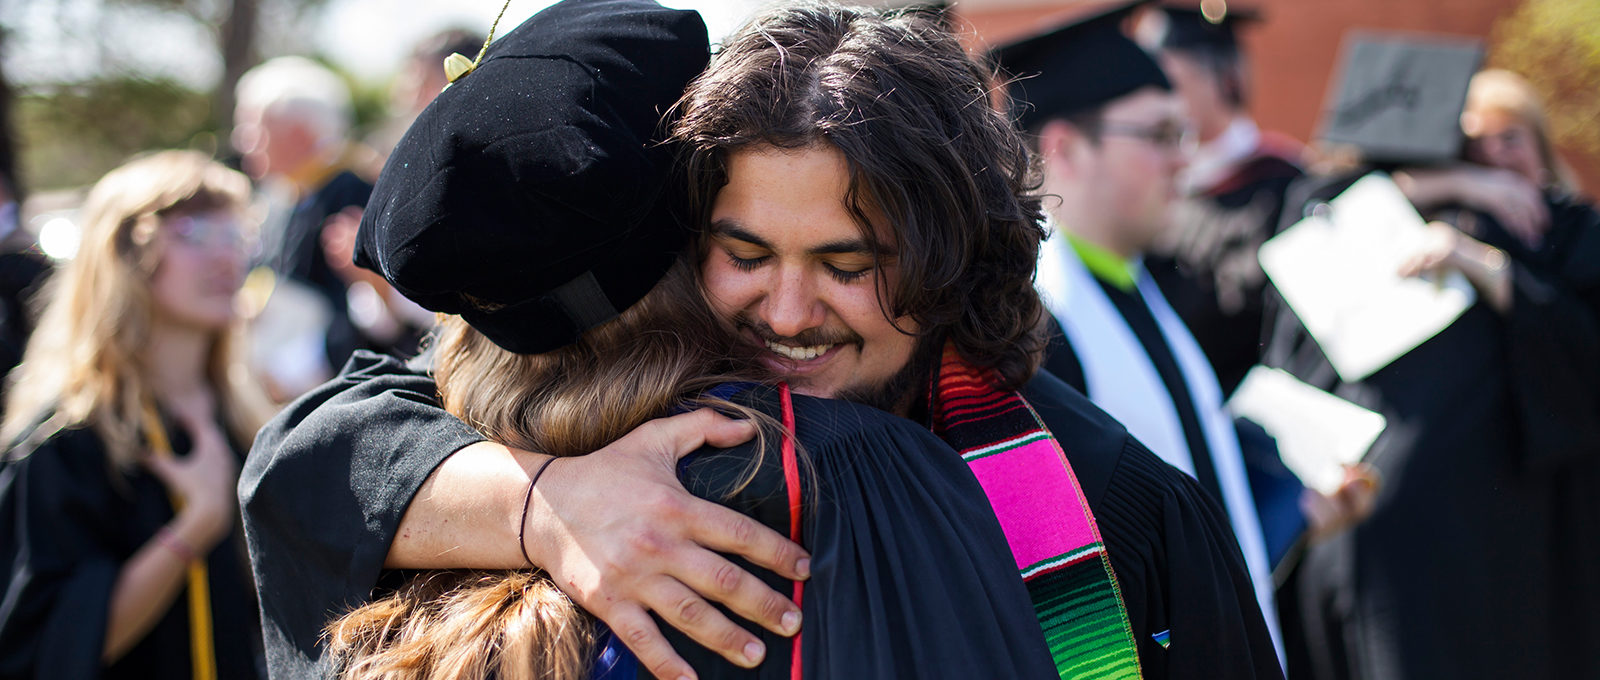 Graduates celebration at commencement